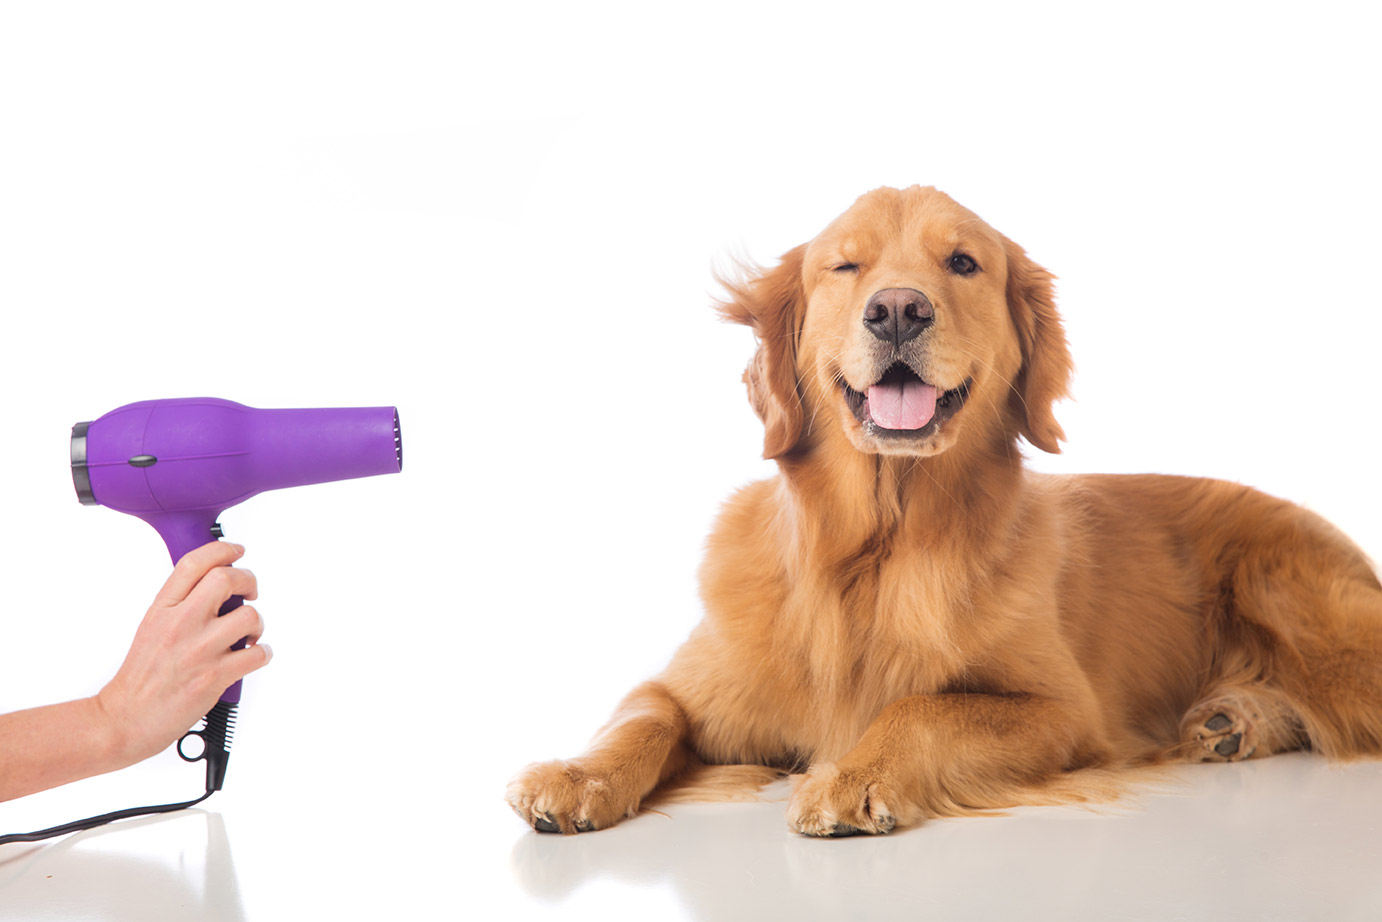 How to Get Rid of Dog Hair in Dryer